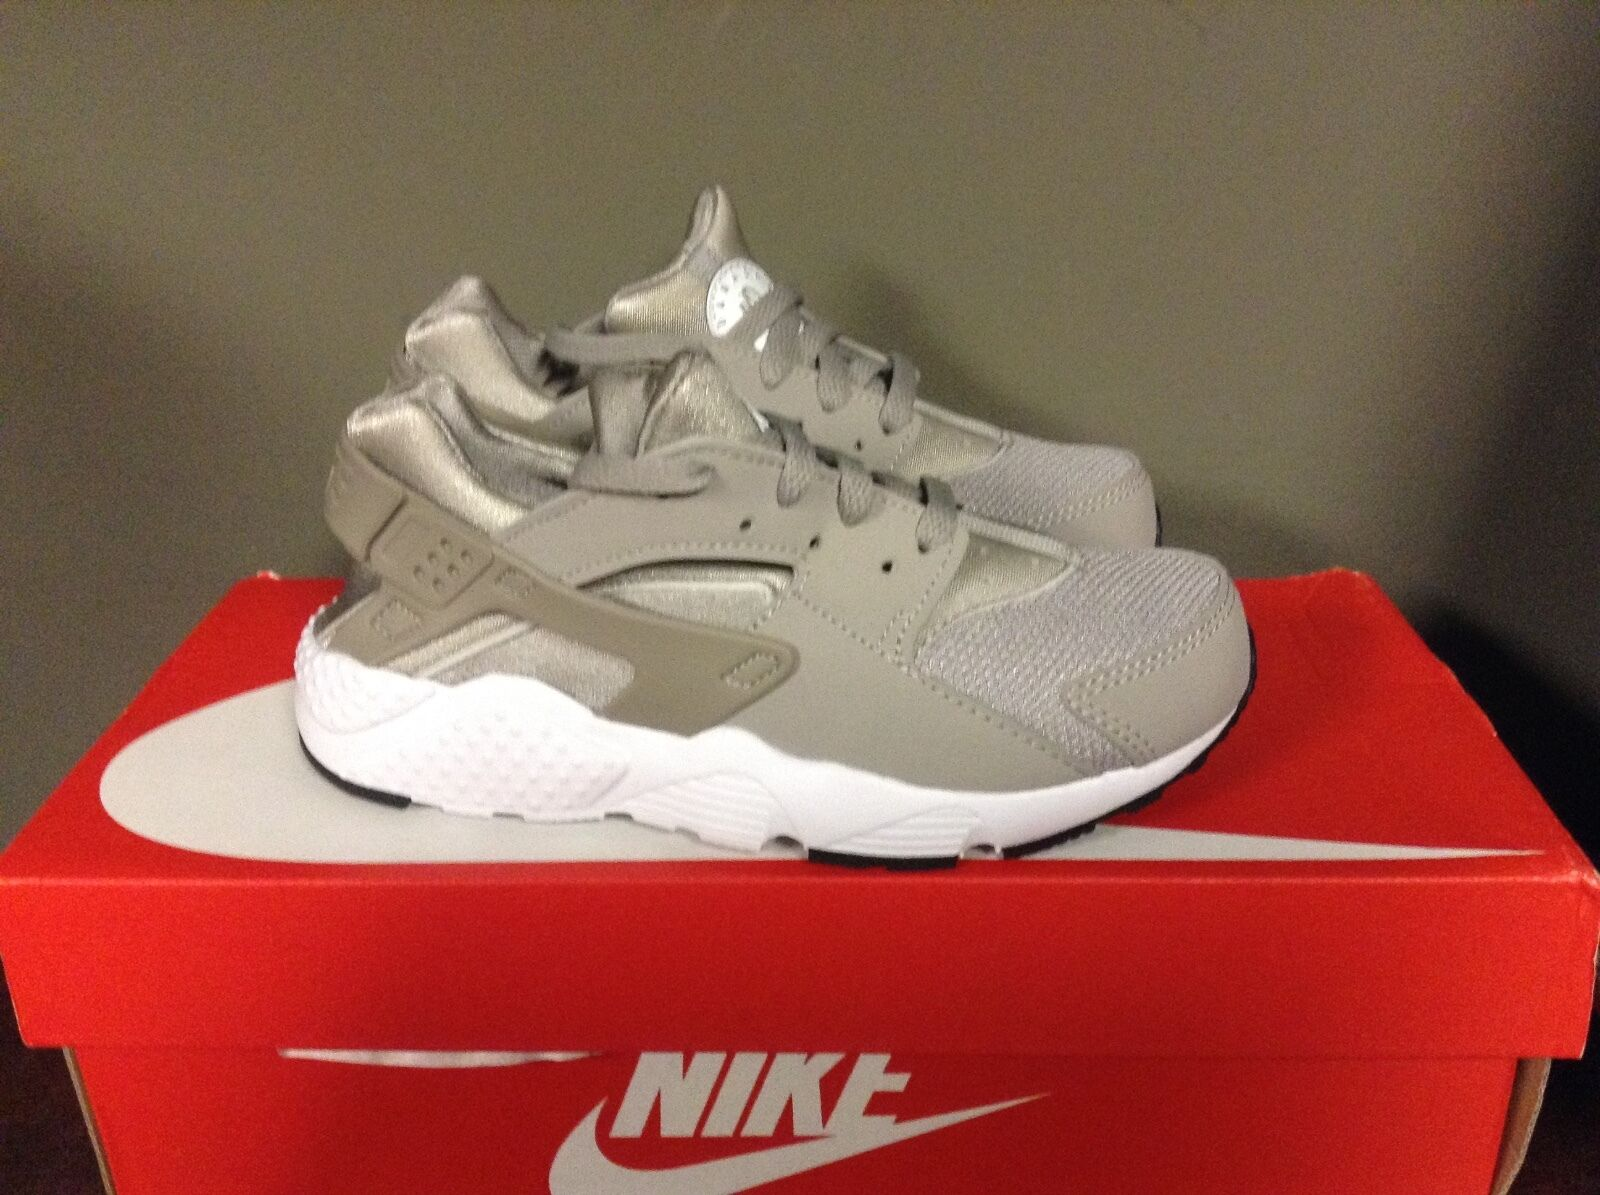 NIKE HUARACHE RUN Price reduction SHOE COBBLESTONE/COBBLESTONE-WHITE-BLACK 654275-029 The latest discount shoes for men and women